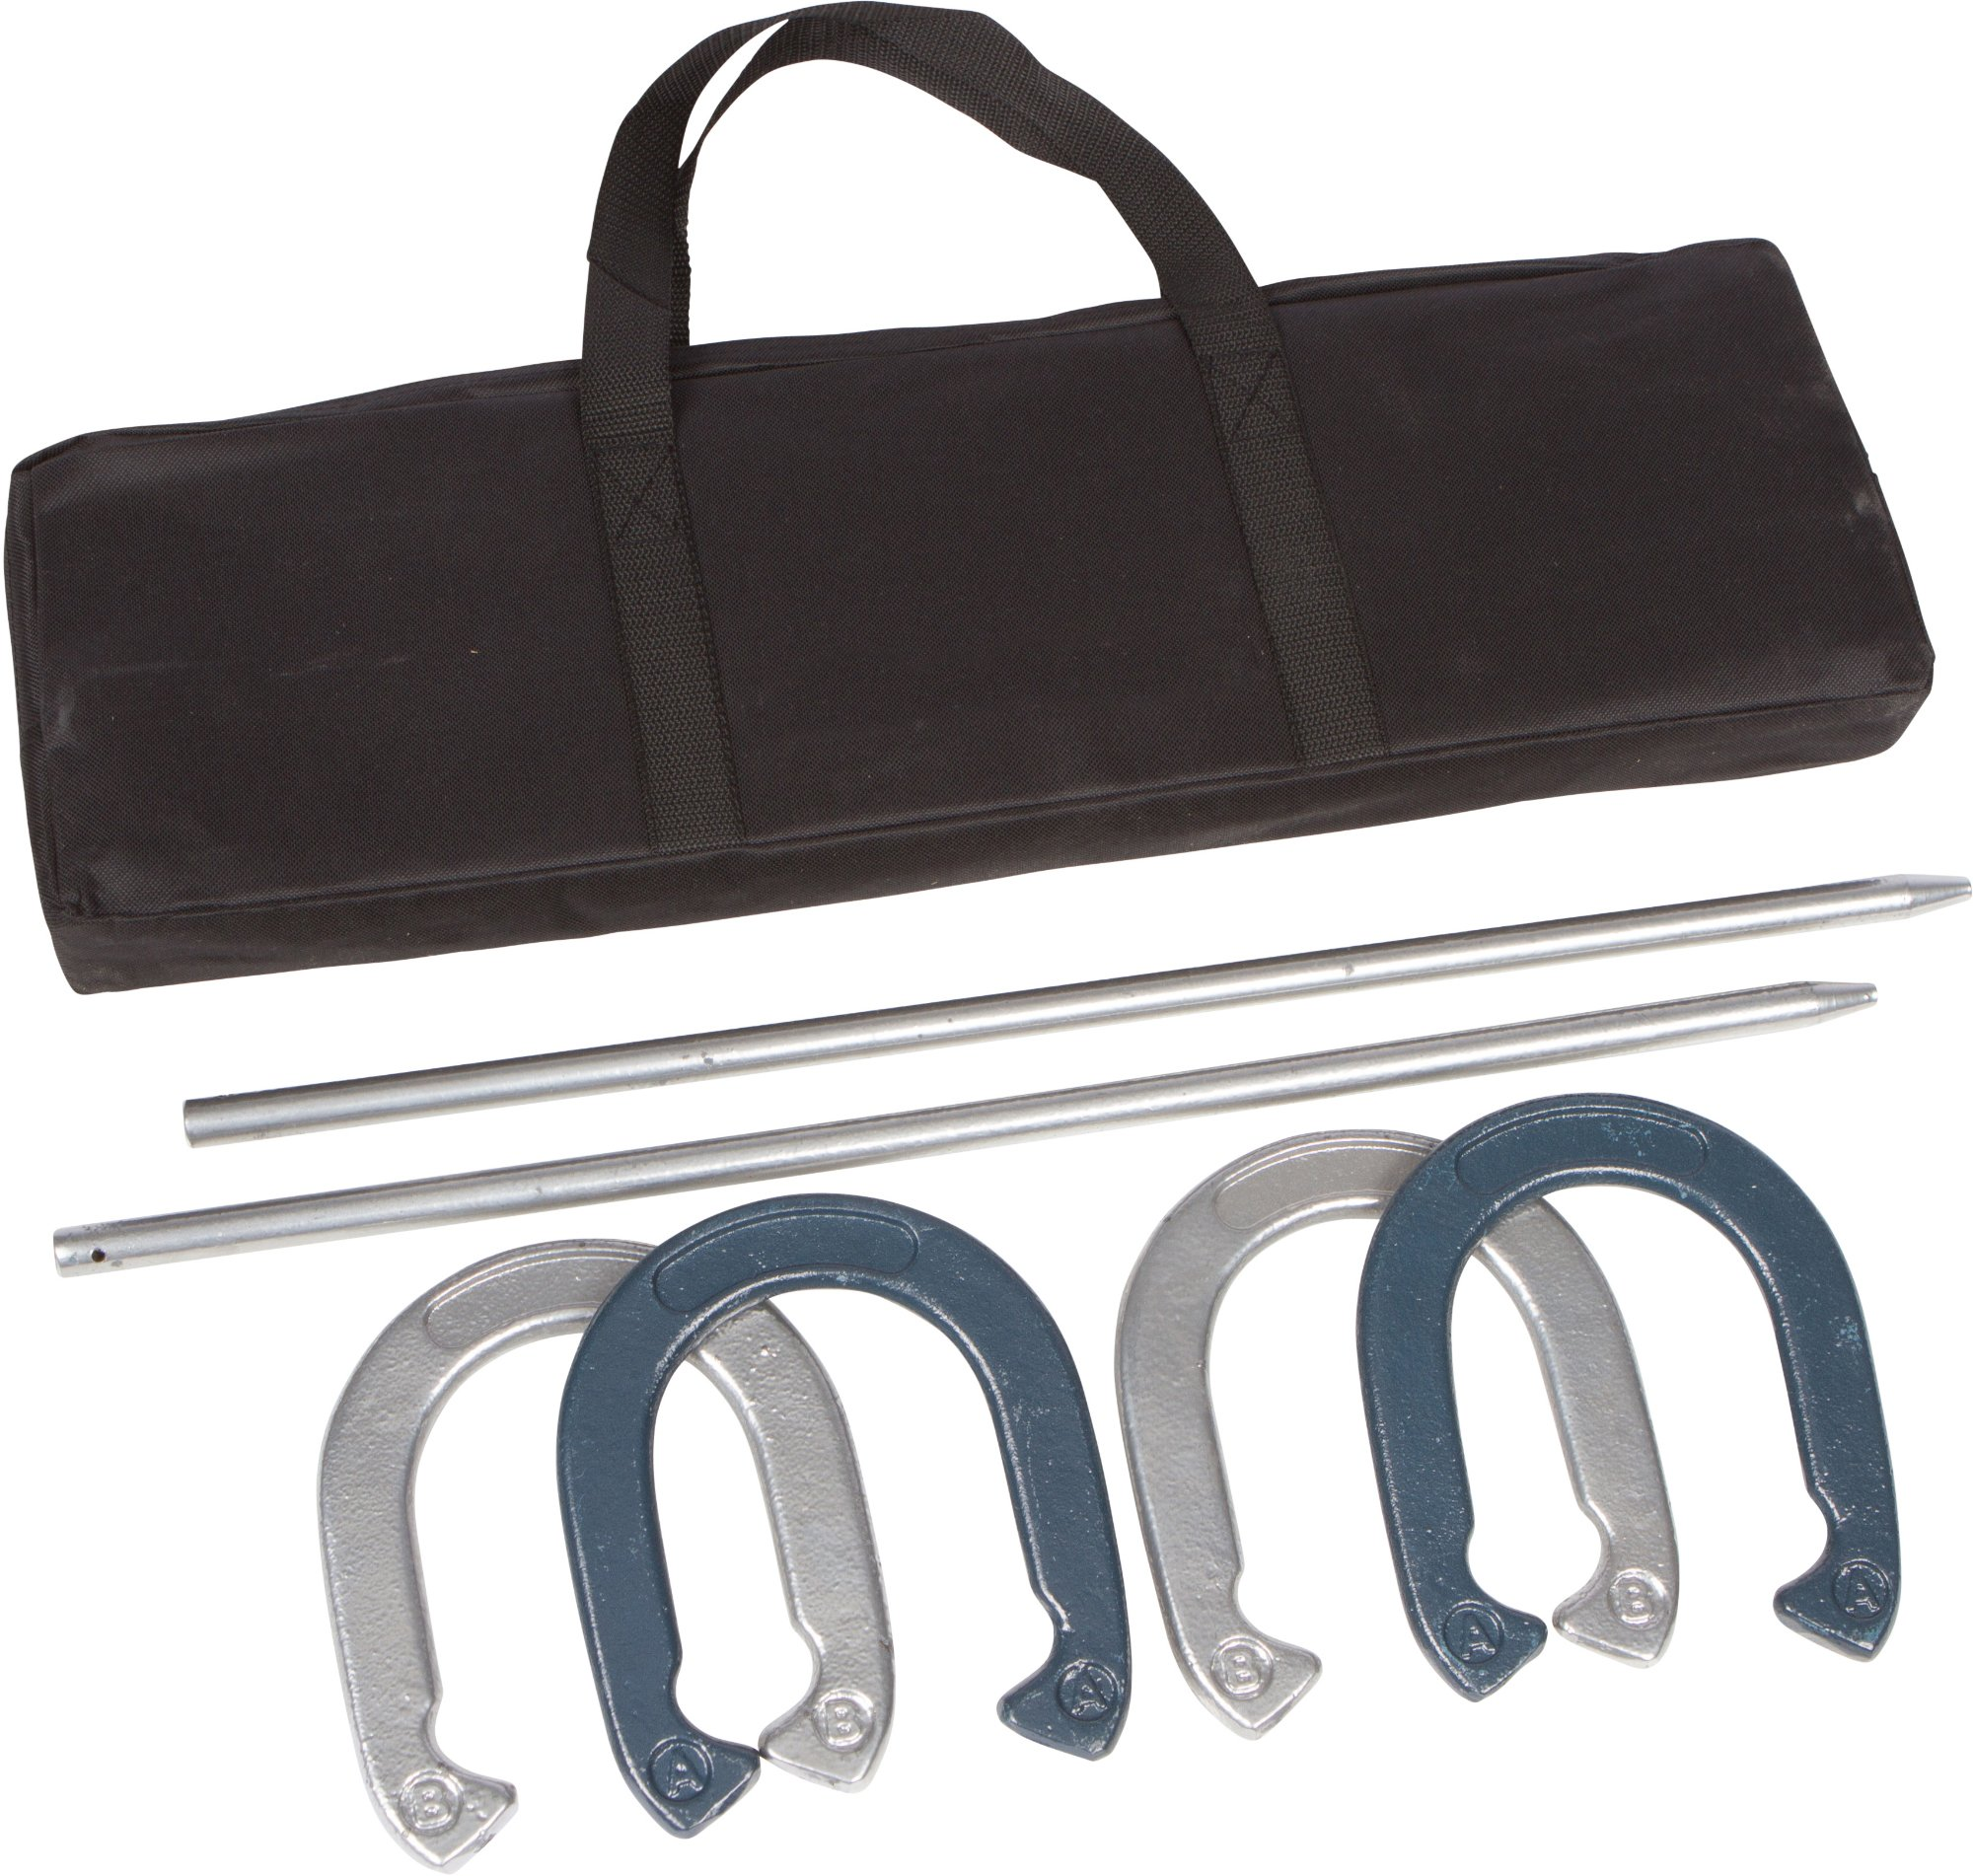 Trademark Innovations Pro Horseshoe Set - Powder Coated Steel with Carry Case by Trademark Innovations (Image #1)